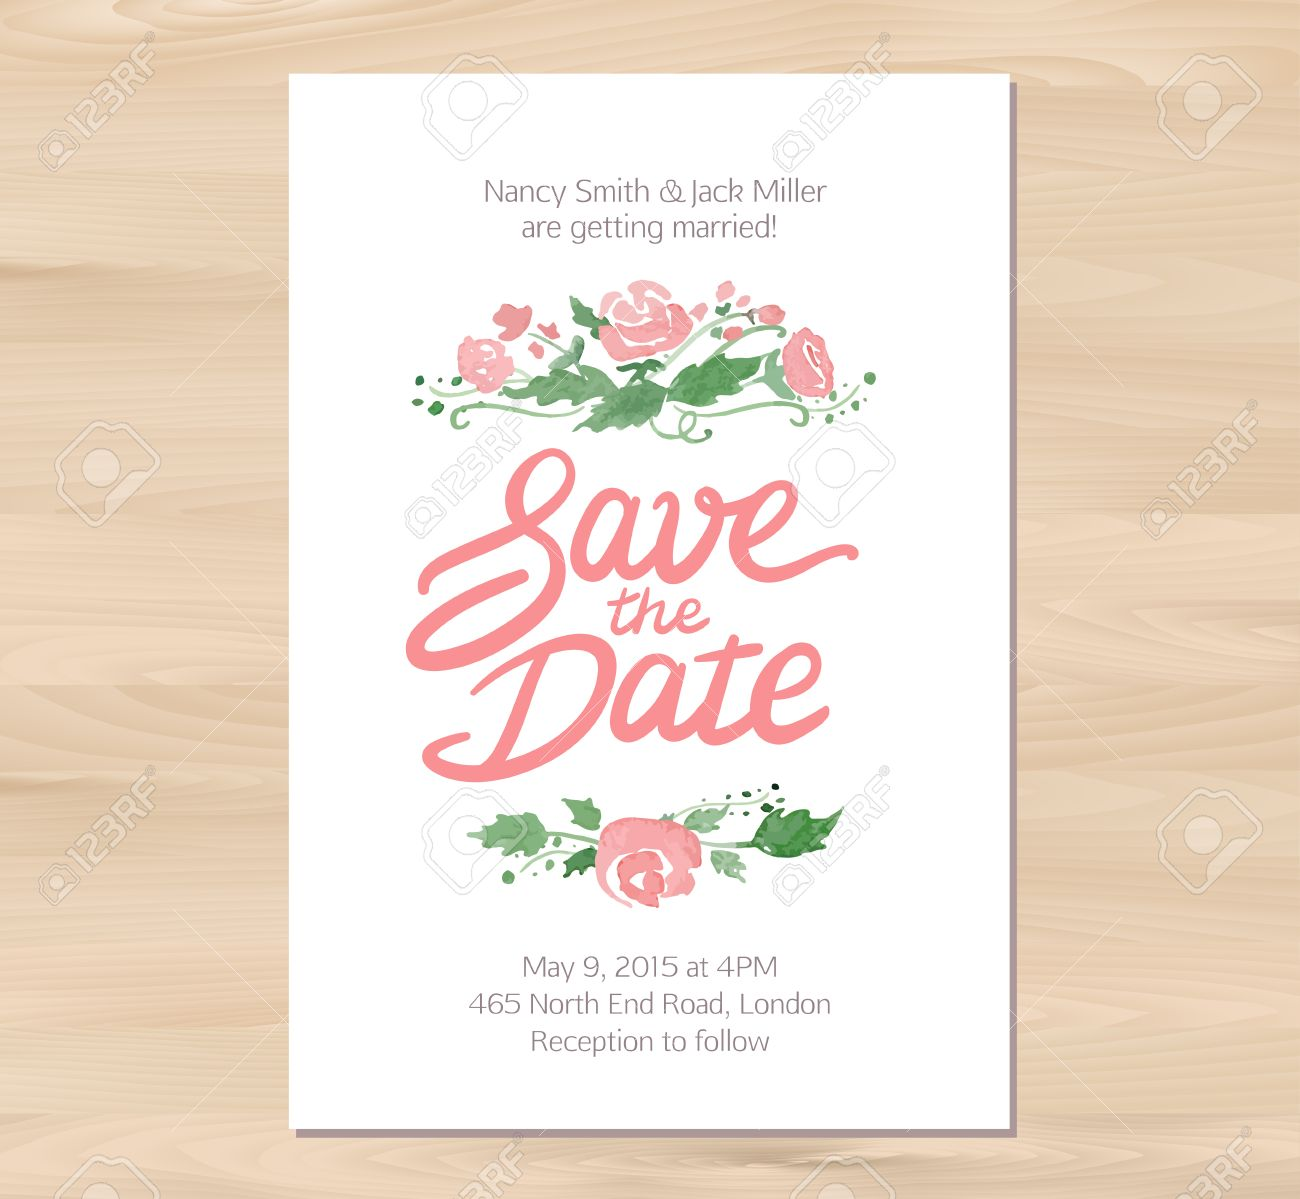 Wedding Invitation Address Font Inspiring Wedding Invitation Help – Save the Date Wedding Template